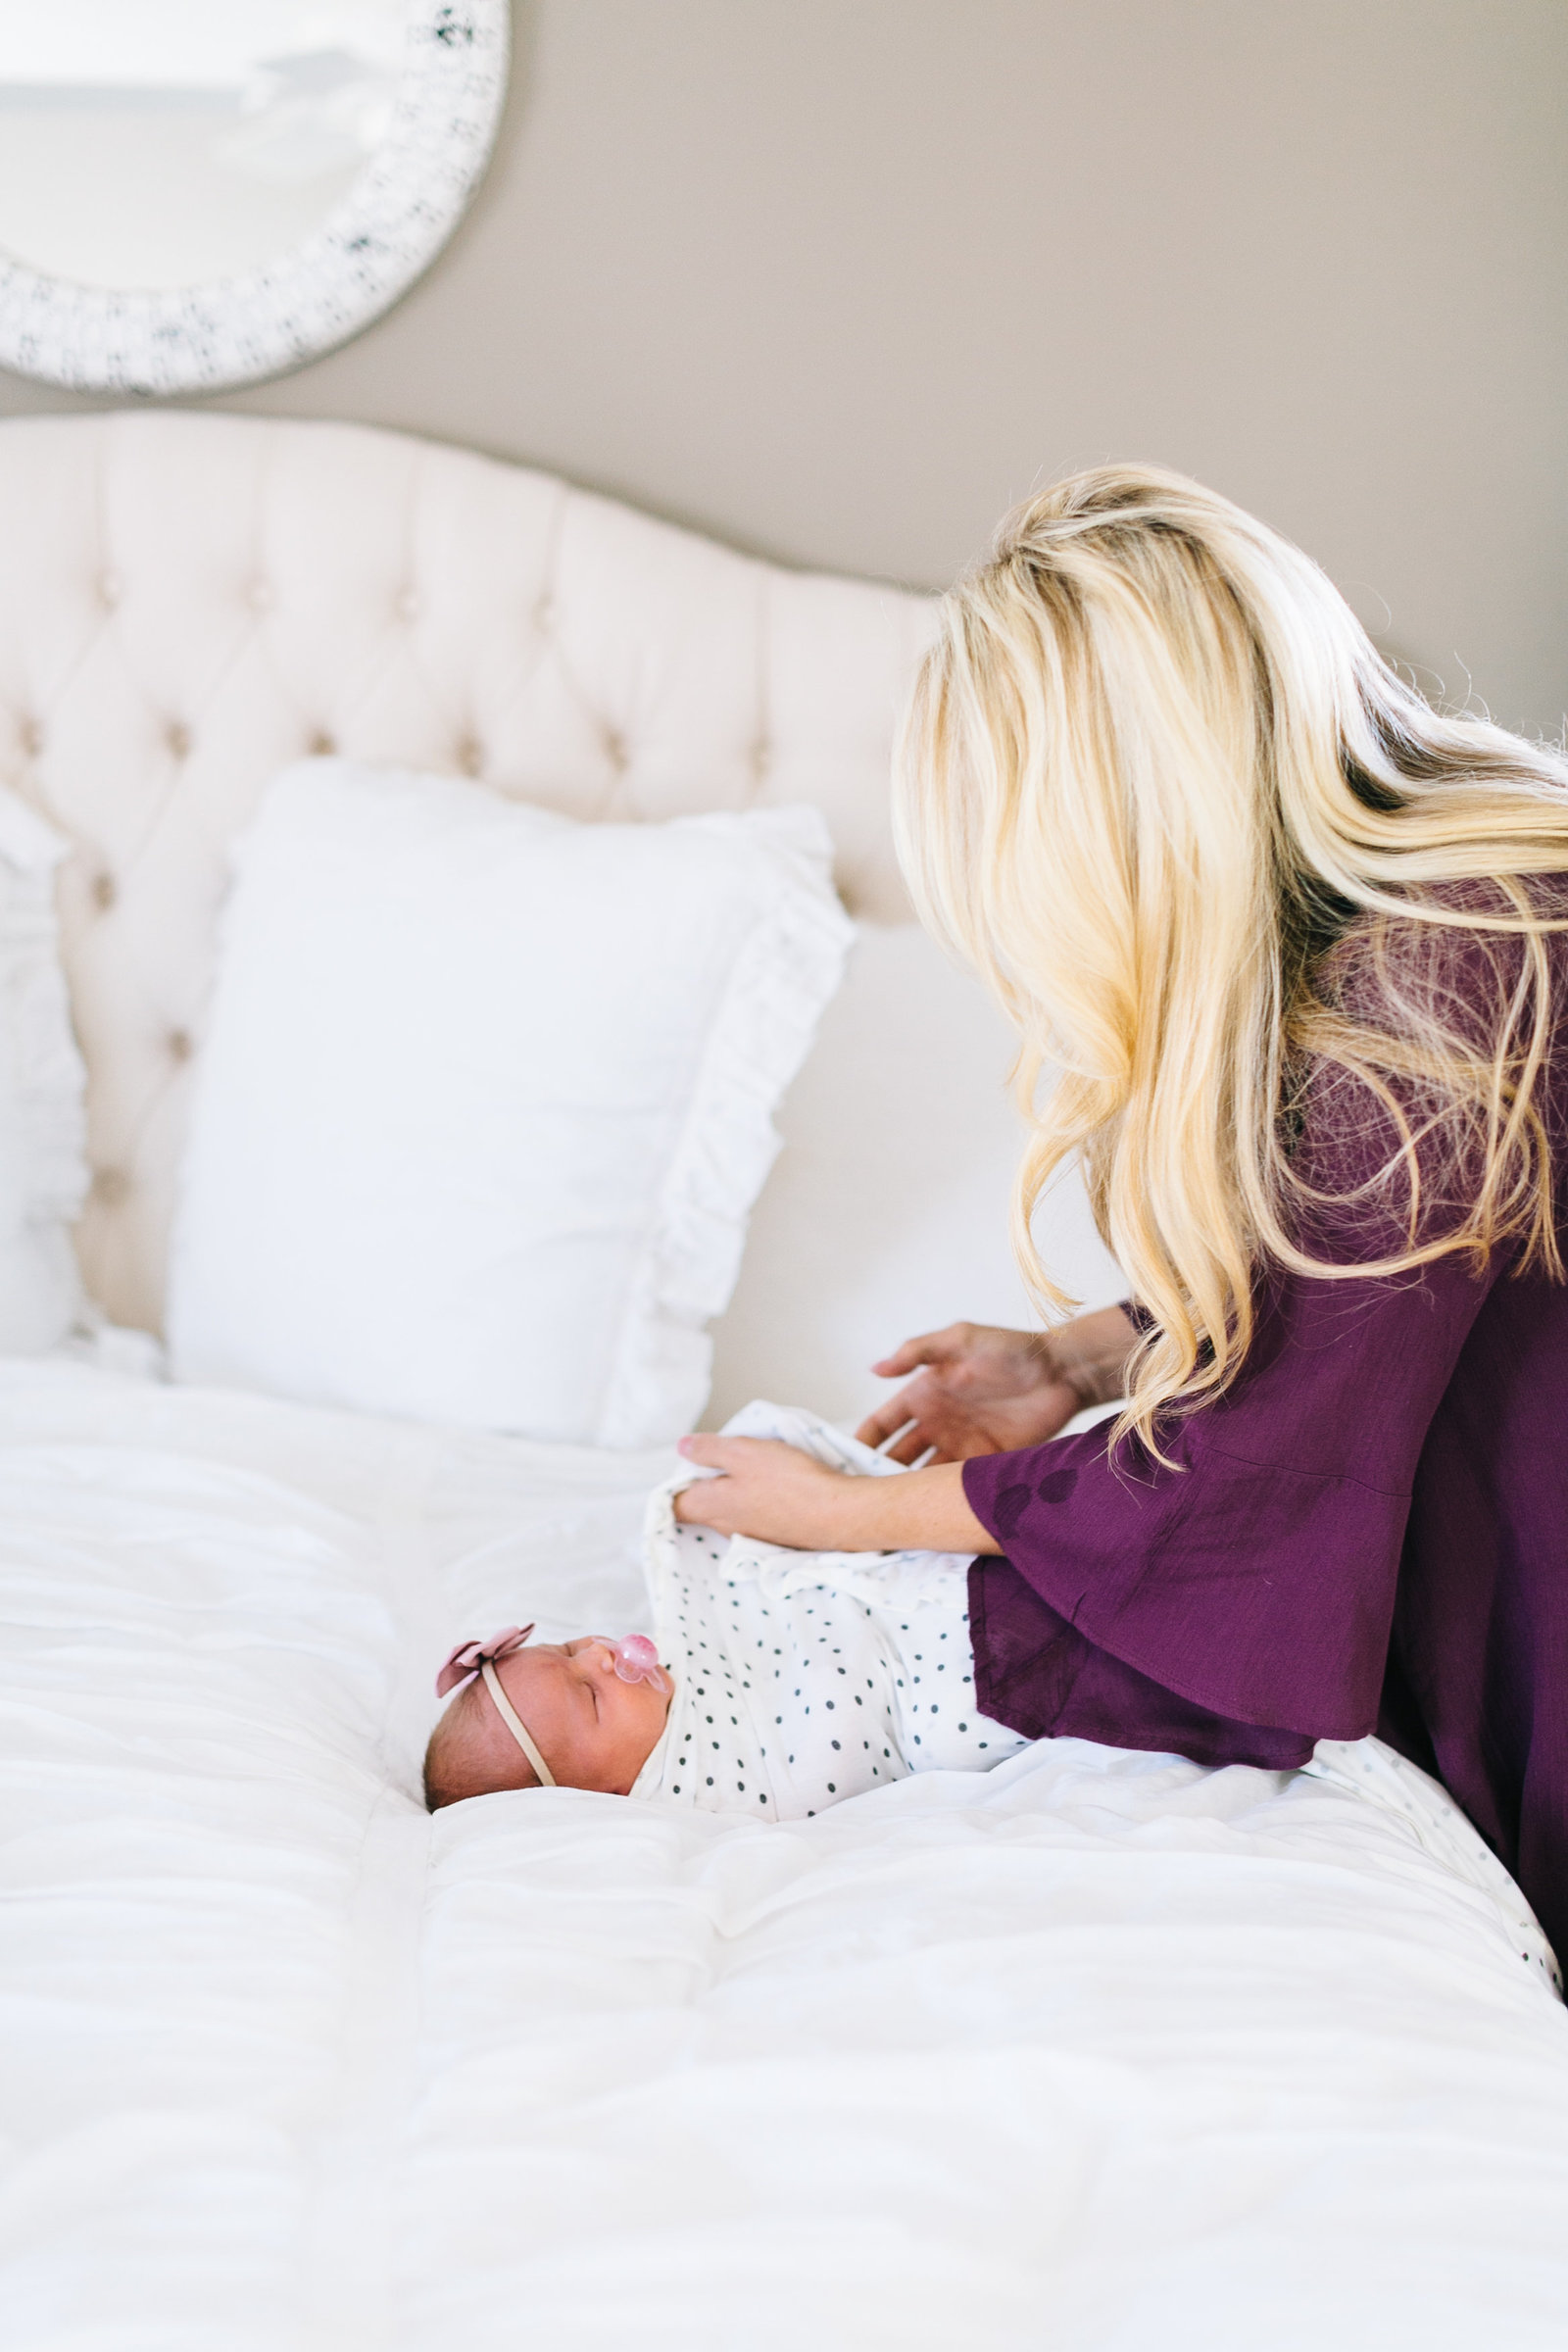 San-Juan-Capistrano-Beach-Newborn-Lifestyle-Photos_57